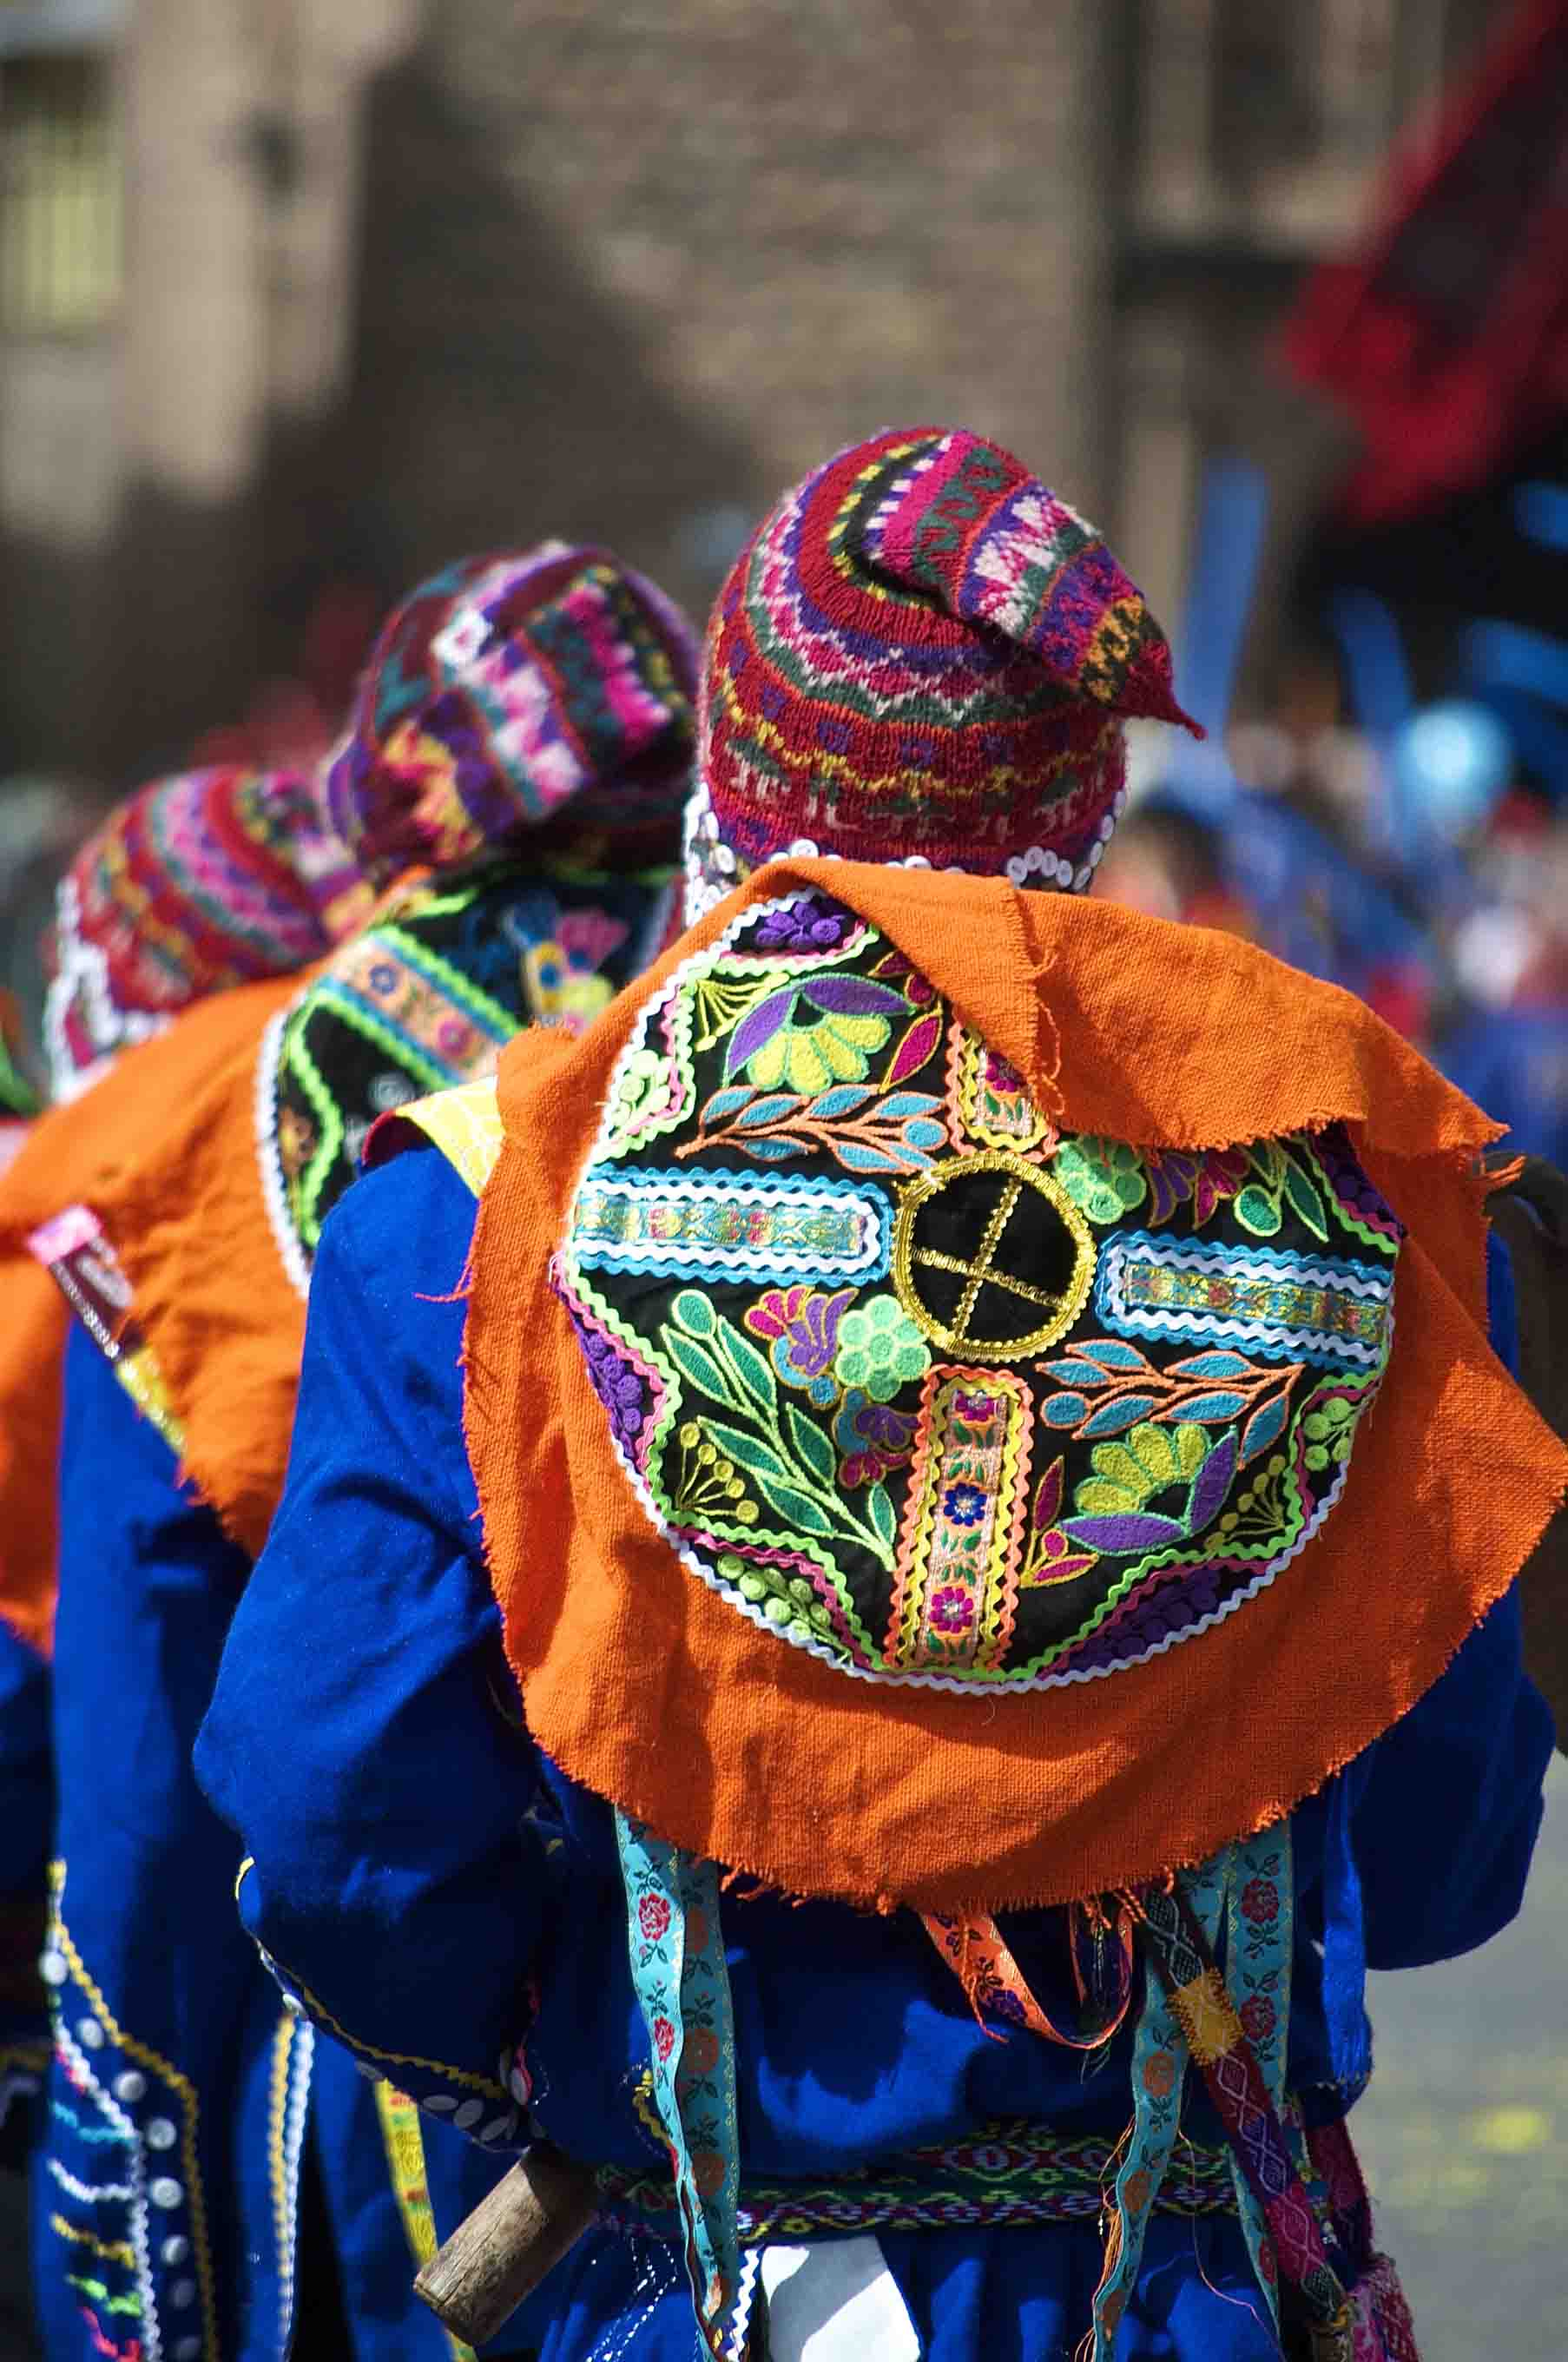 The backs of costumed young men dancing in the traditional Inti Raymi festival in Cusco, Peru.  Inti Raymi is the annual festival celebrating Incan culture in Peru, and involves traditional dress and dances in the central Plaza de Armas of Cusco.